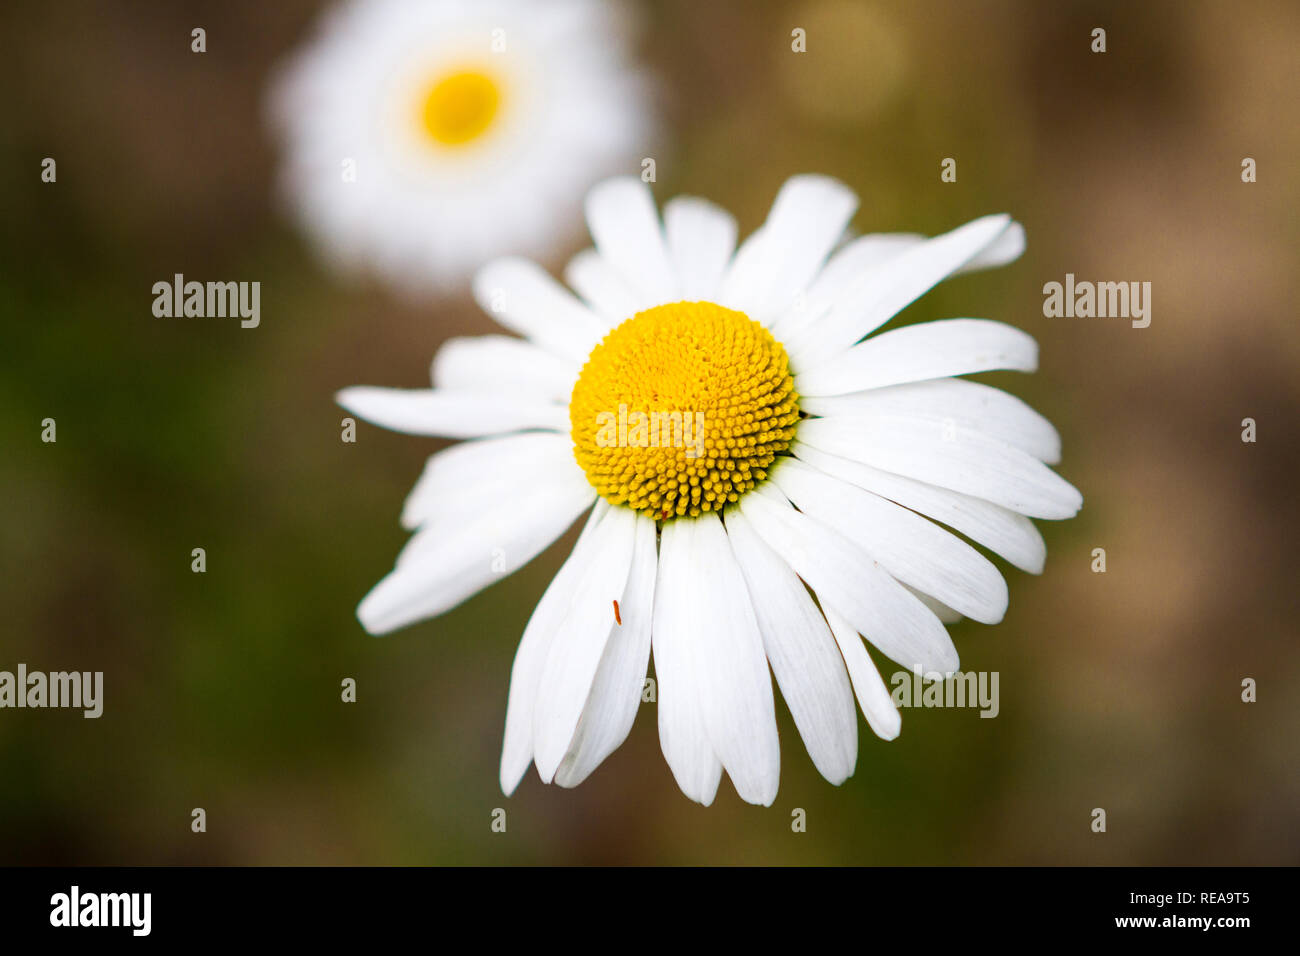 Dazzling Daisies! - Wild daisies brighten tired hikers' spirits along the Slab Camp Trail. Olympic National Forest, Sequim, Washington, USA - Stock Image